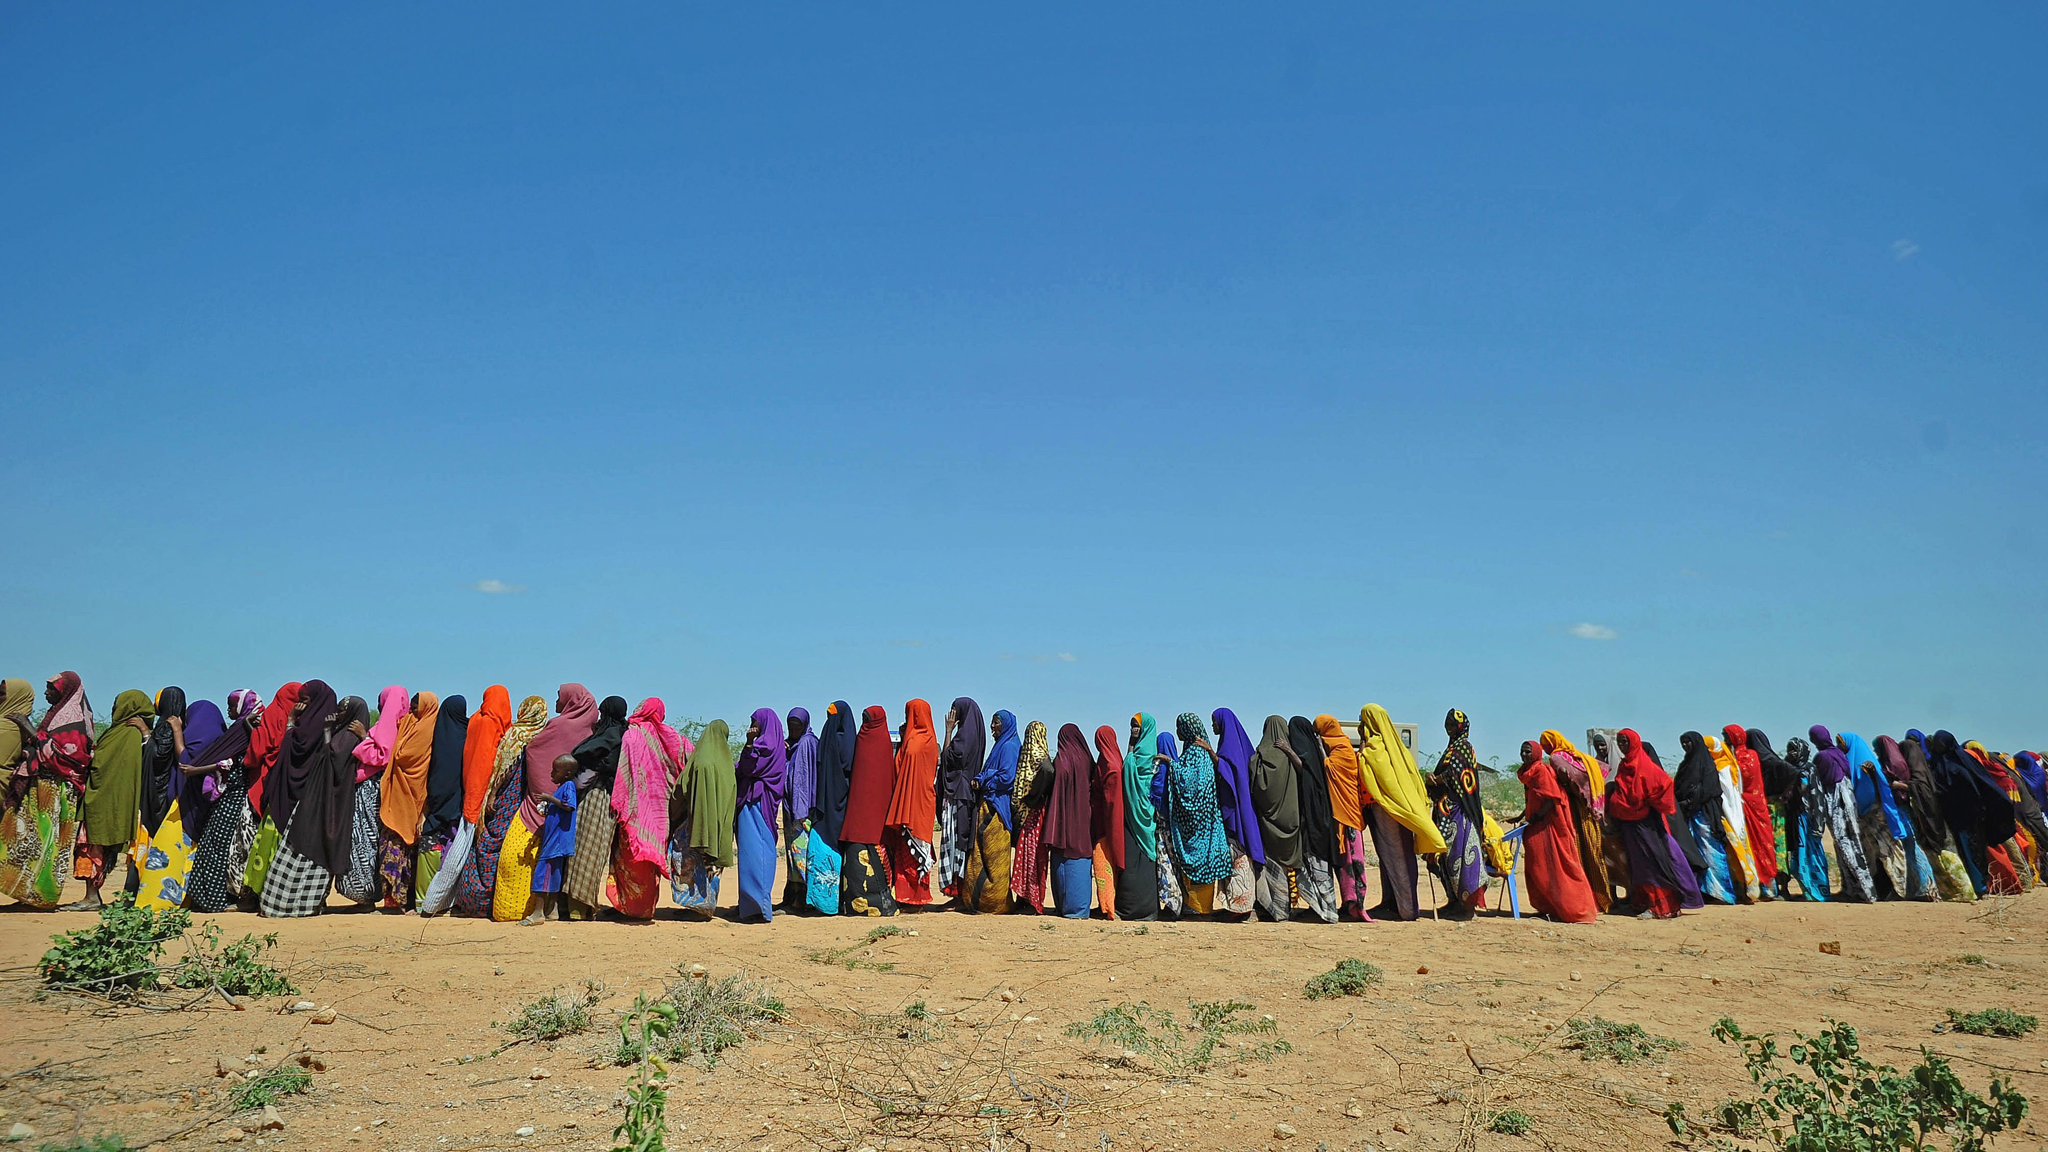 Displaced Somalis queue for aid in Beledweyne, north of Mogadishu on May 26, 2016. Hundreds of families have been forced out of their homes following flash floods in Beledweyne after torrential rains pounded the area in the last few days.The heavy rains led to the bursting of River Shabelle which caused massive floods in residential areas along the river.  / AFP PHOTO / MOHAMED ABDIWAHABMOHAMED ABDIWAHAB/AFP/Getty Images